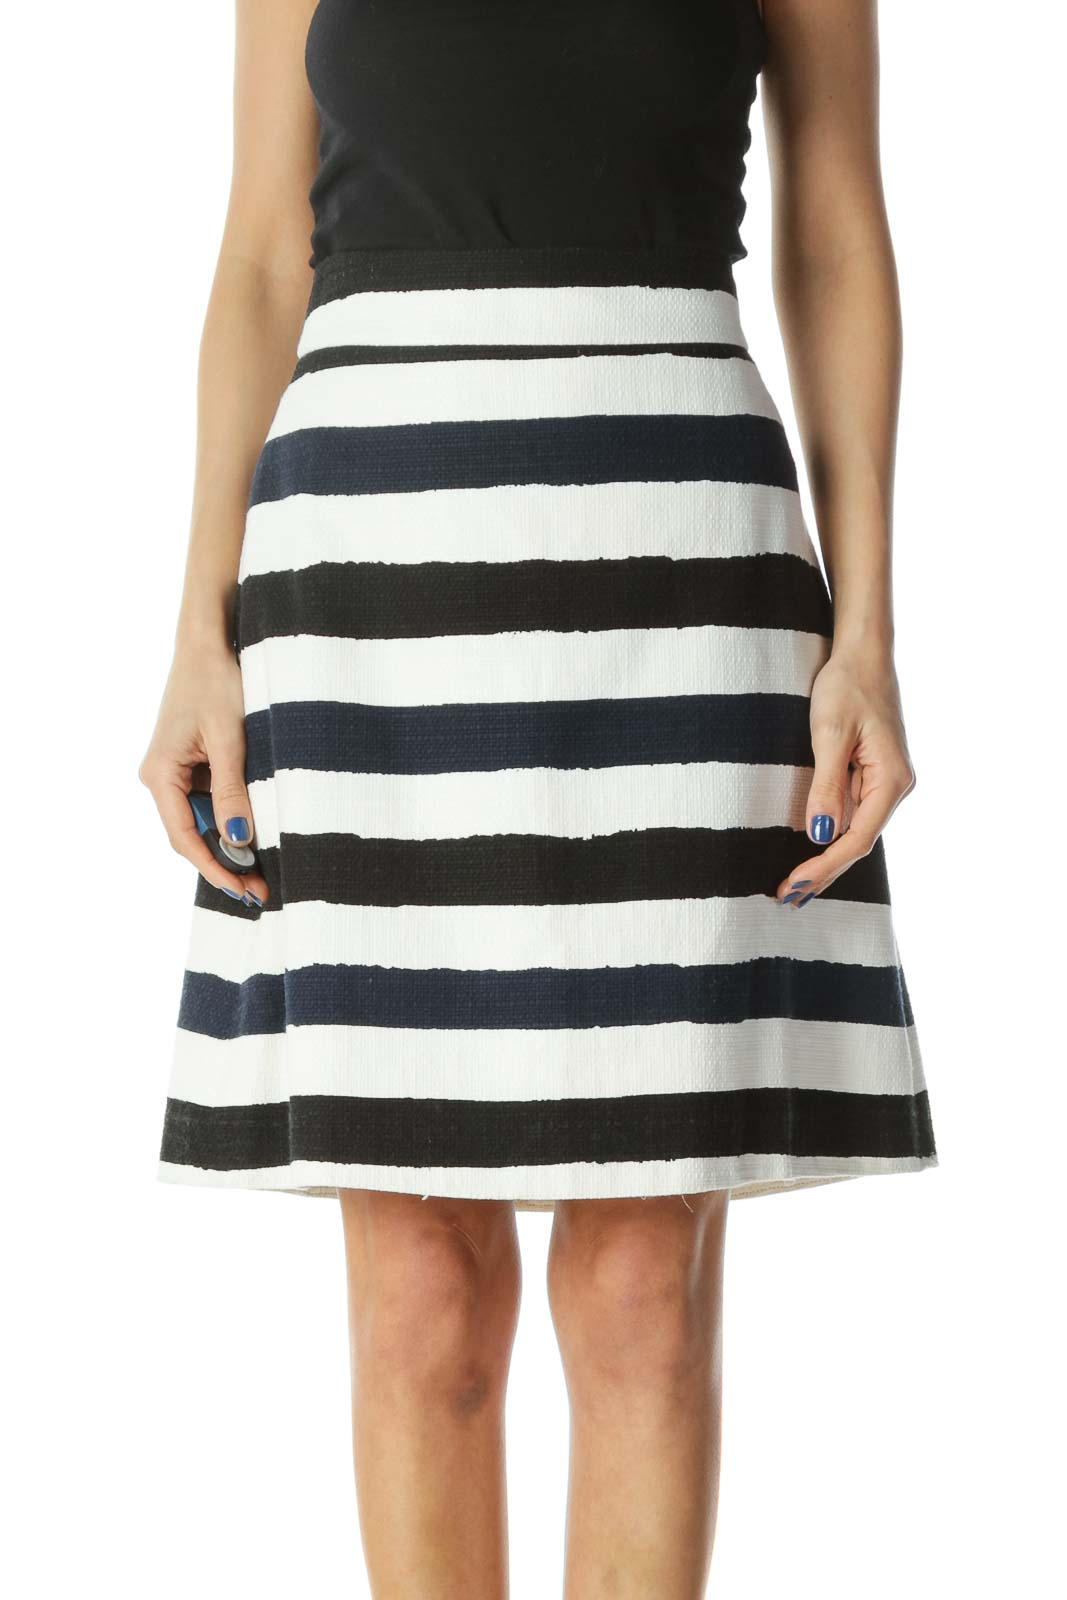 Blue, Black,and White Striped Skirt